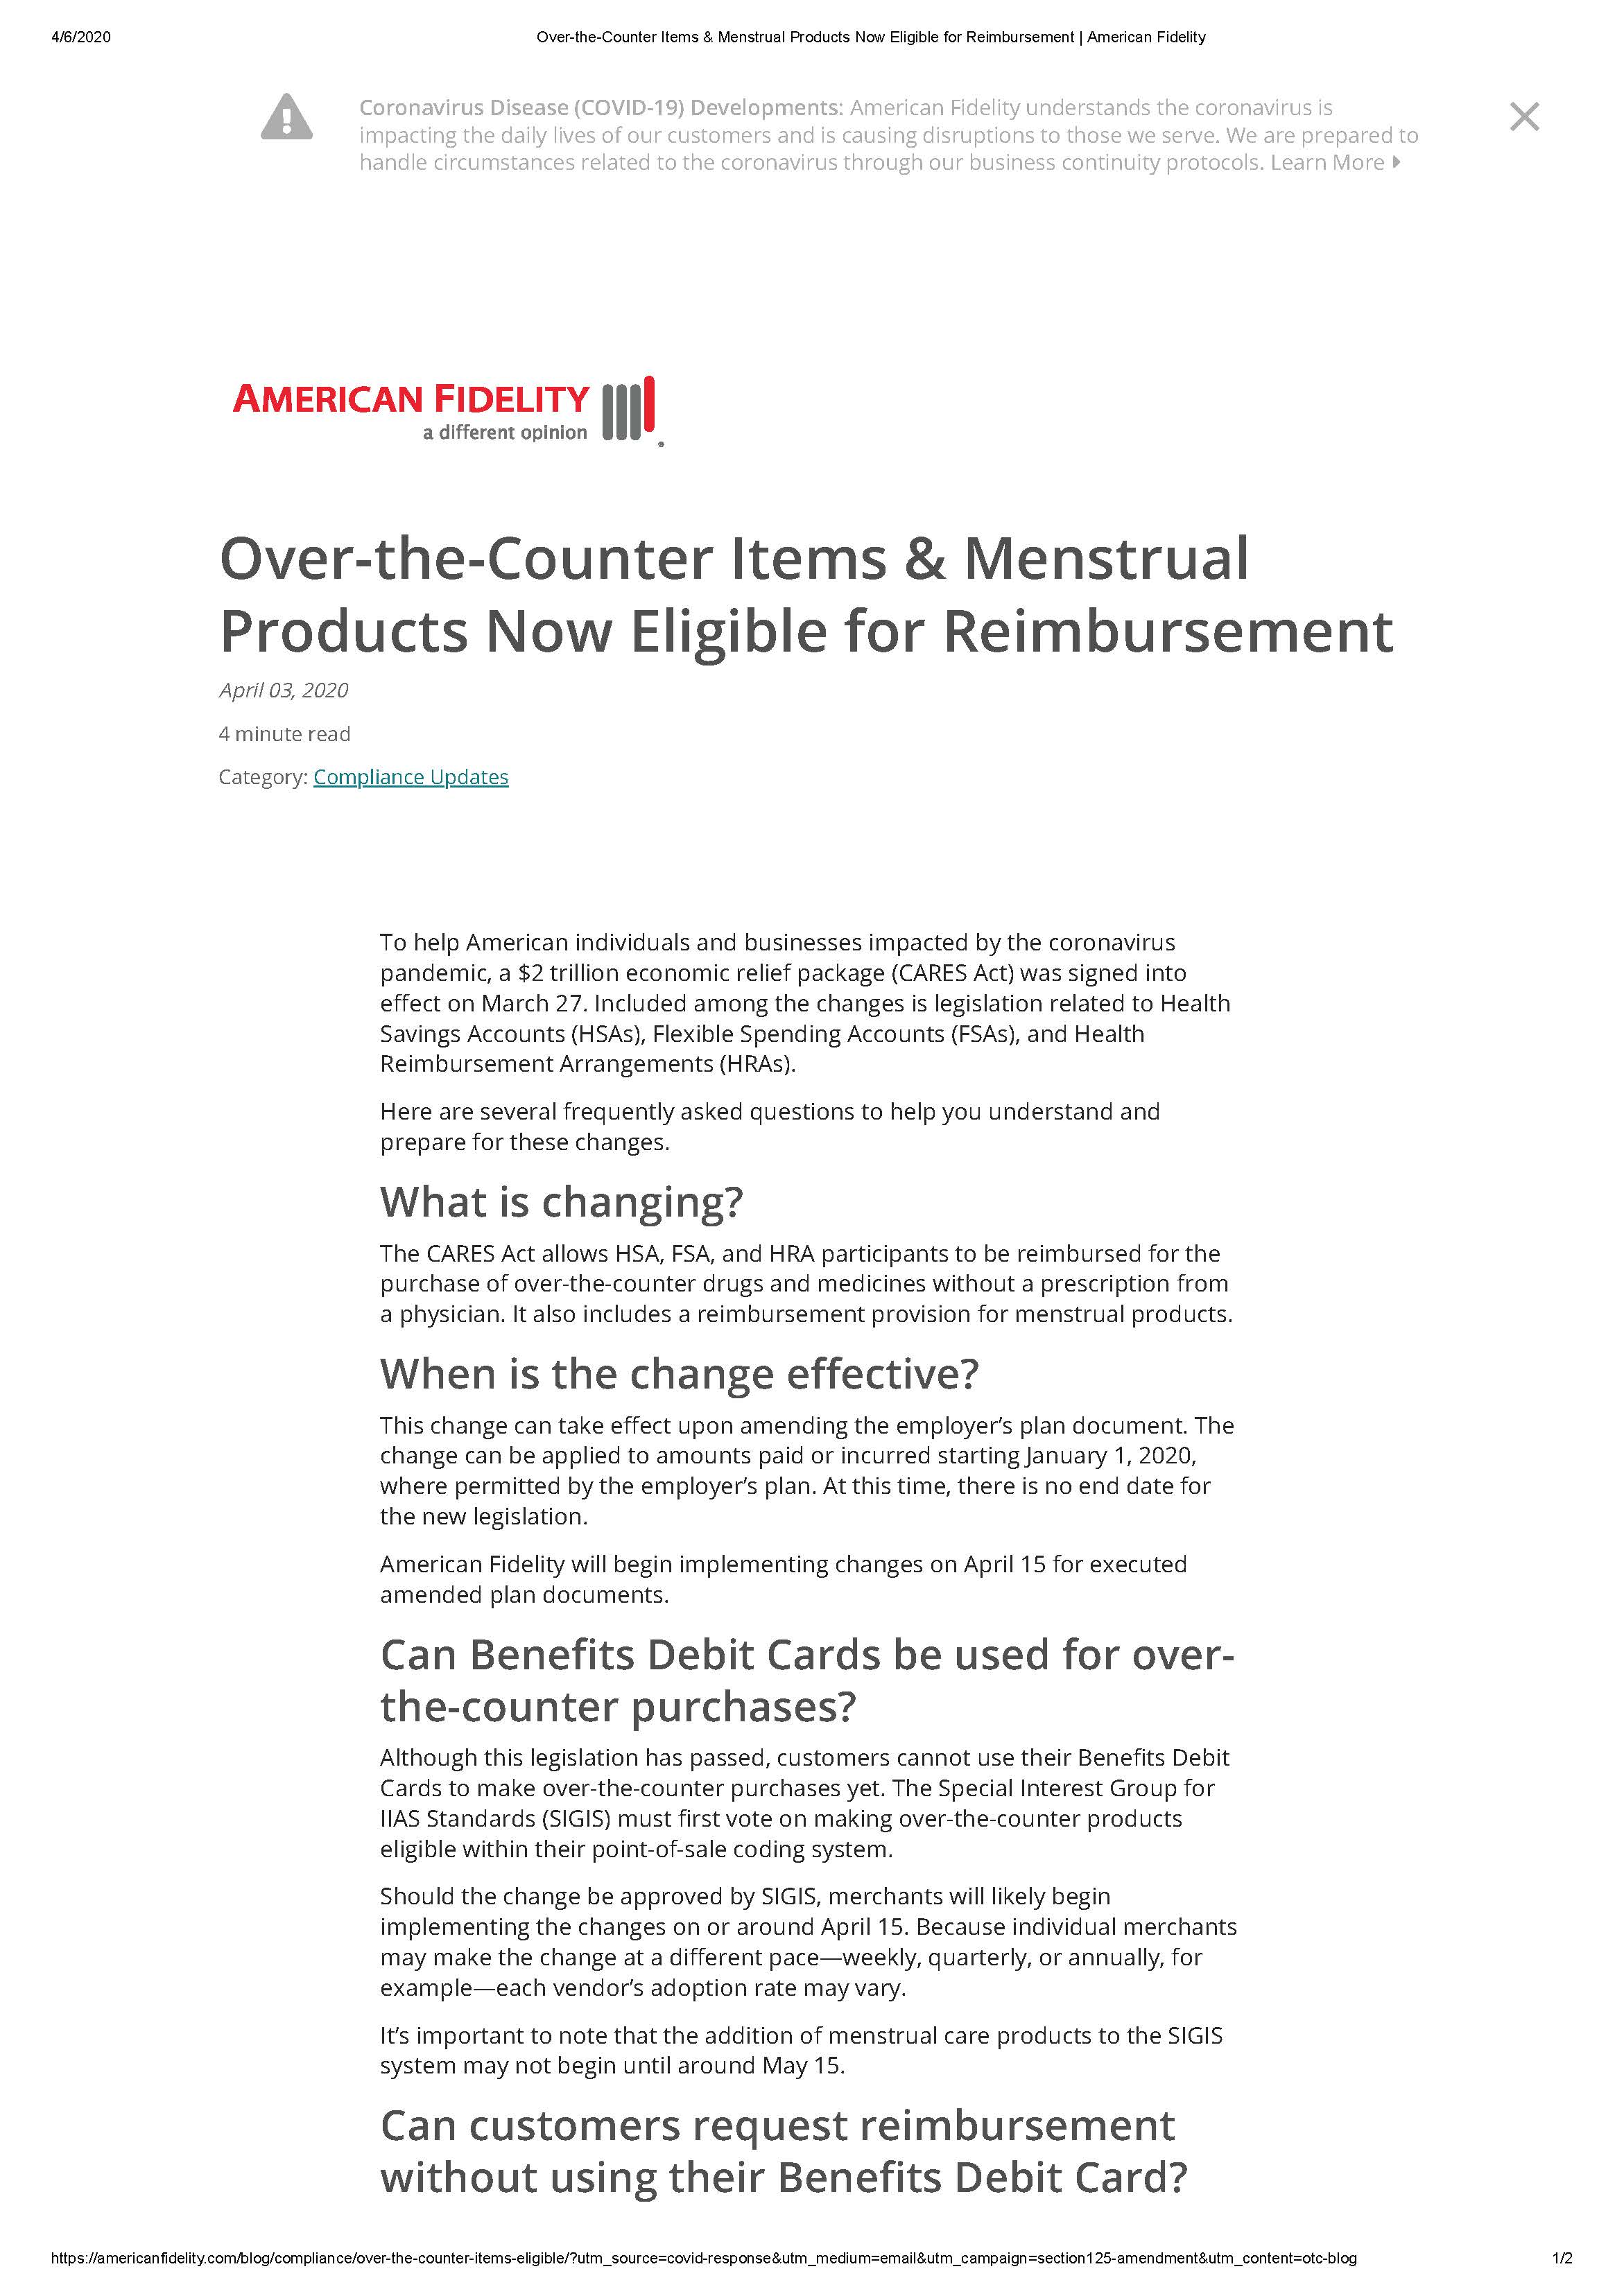 Over-the-Counter Items & Menstrual Products Eligible for Reimbursment Page 1